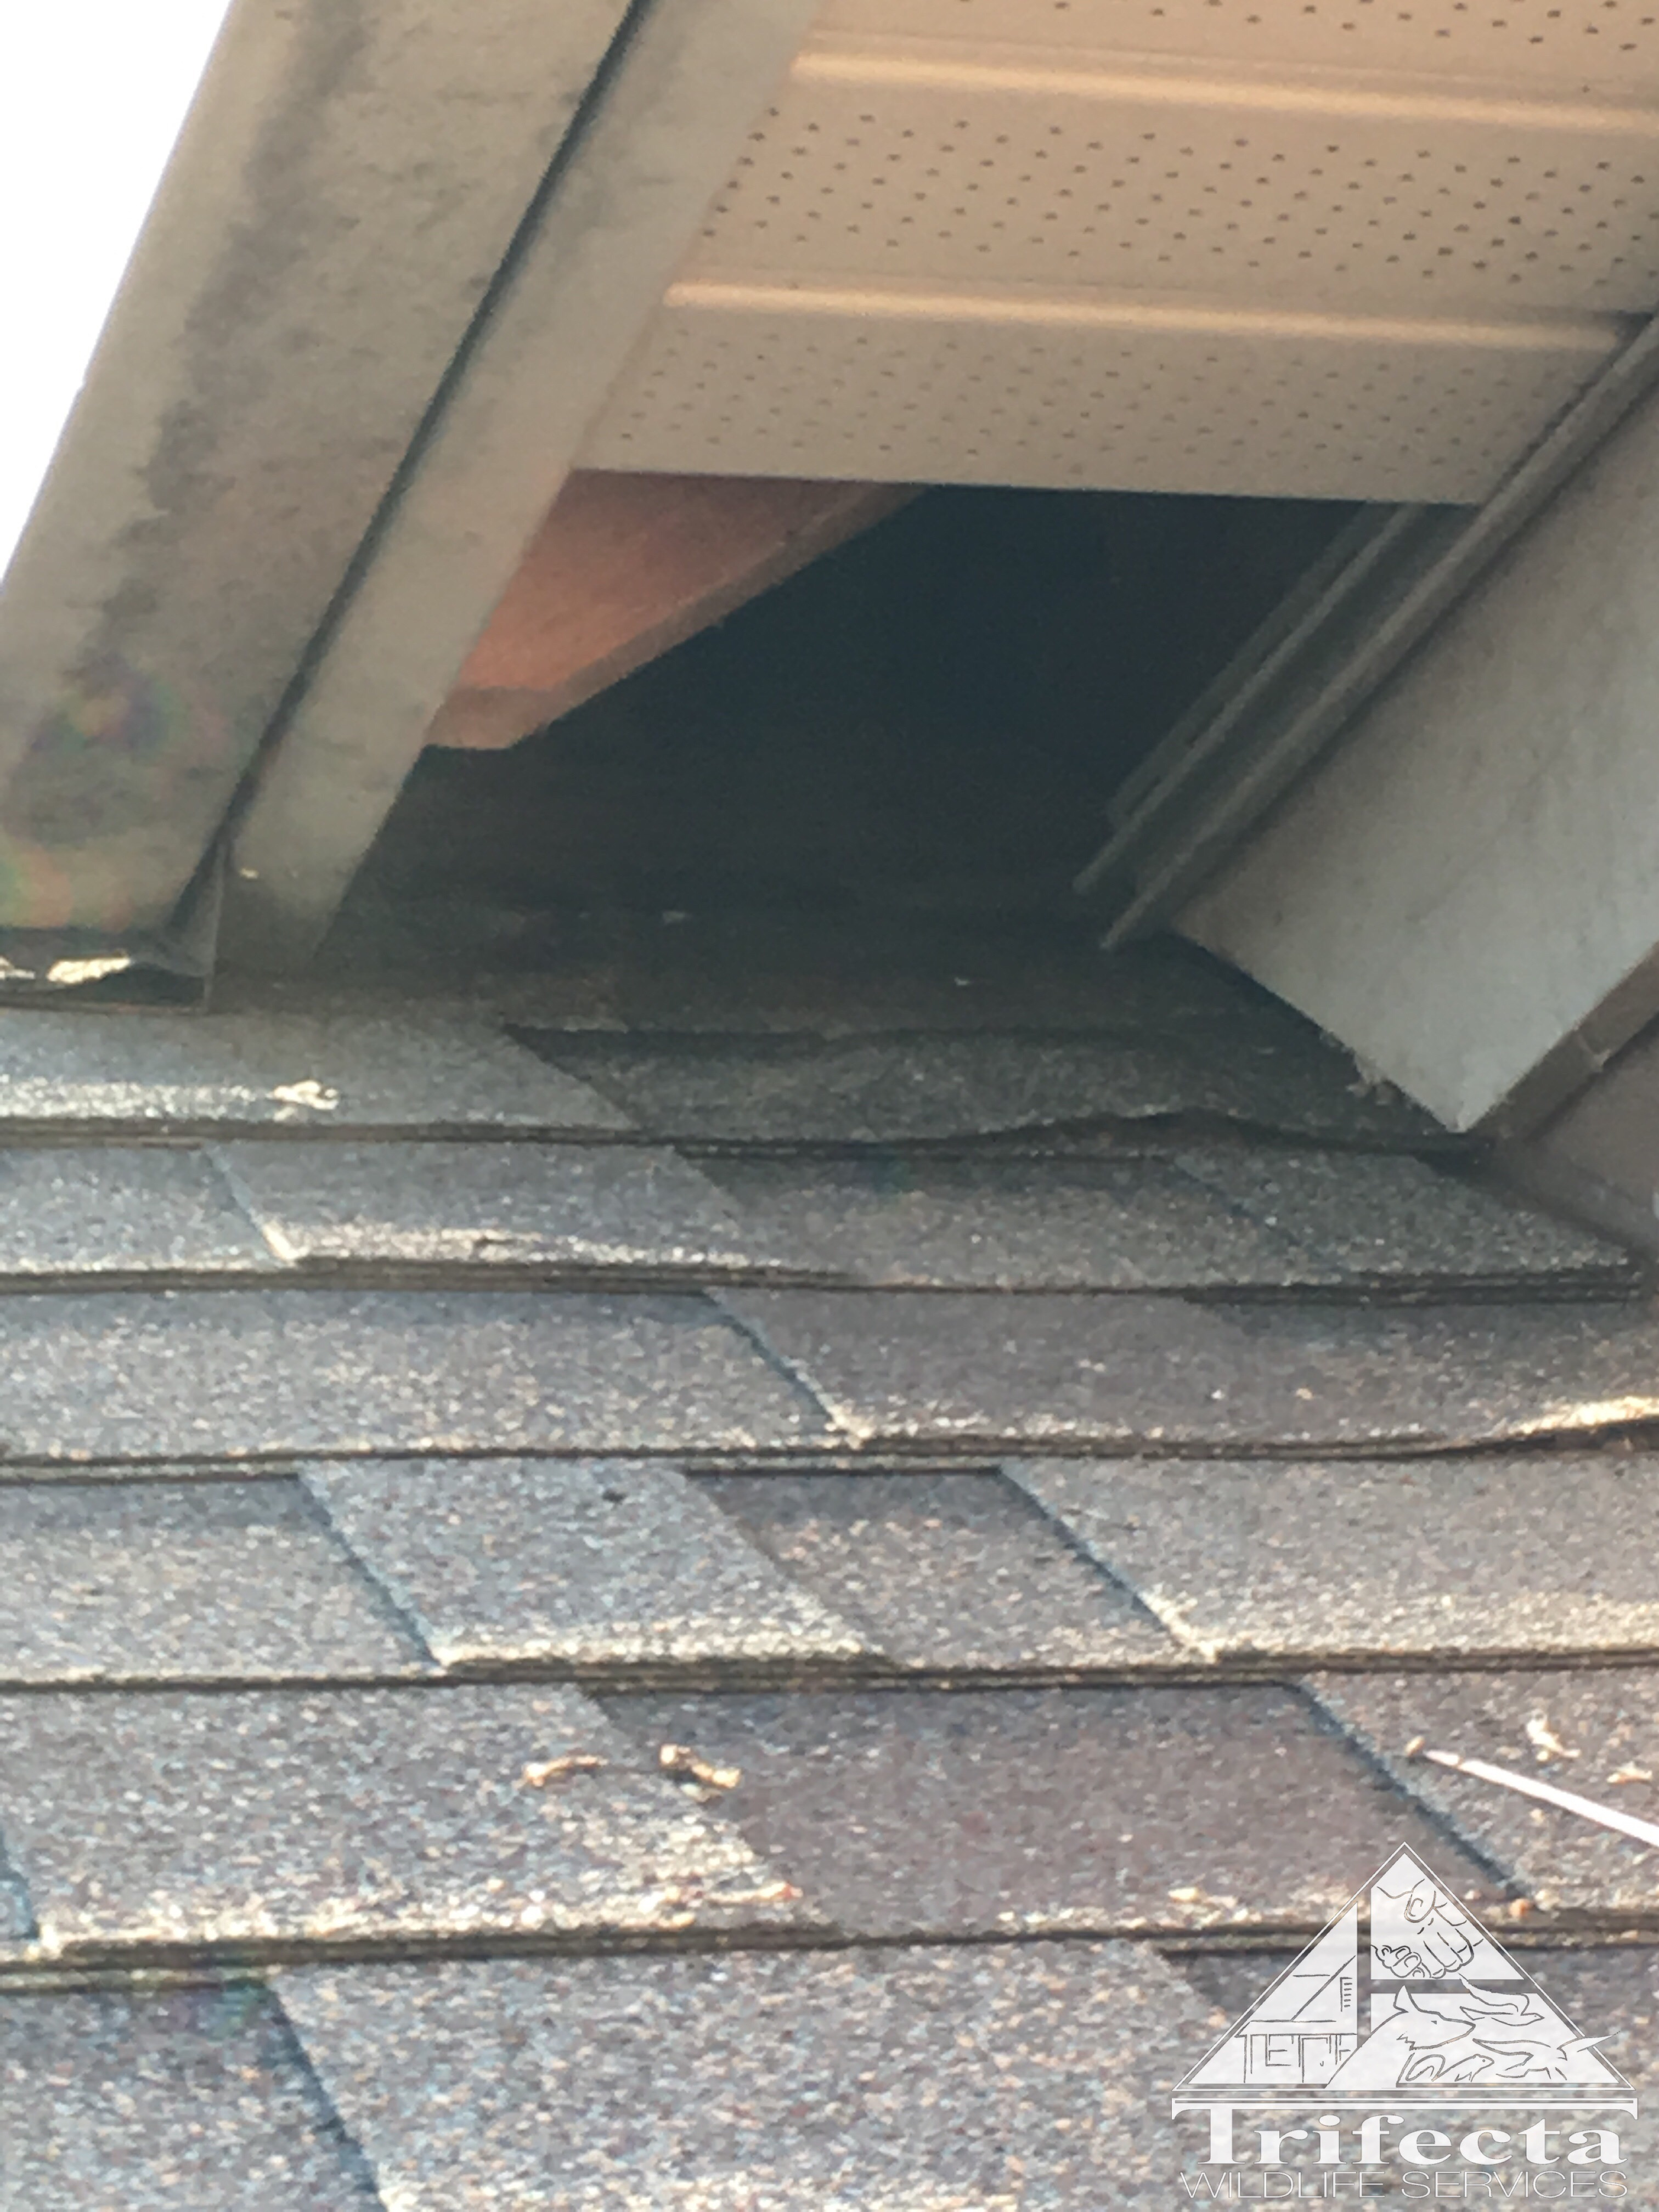 Soffit return entry being used by raccoon